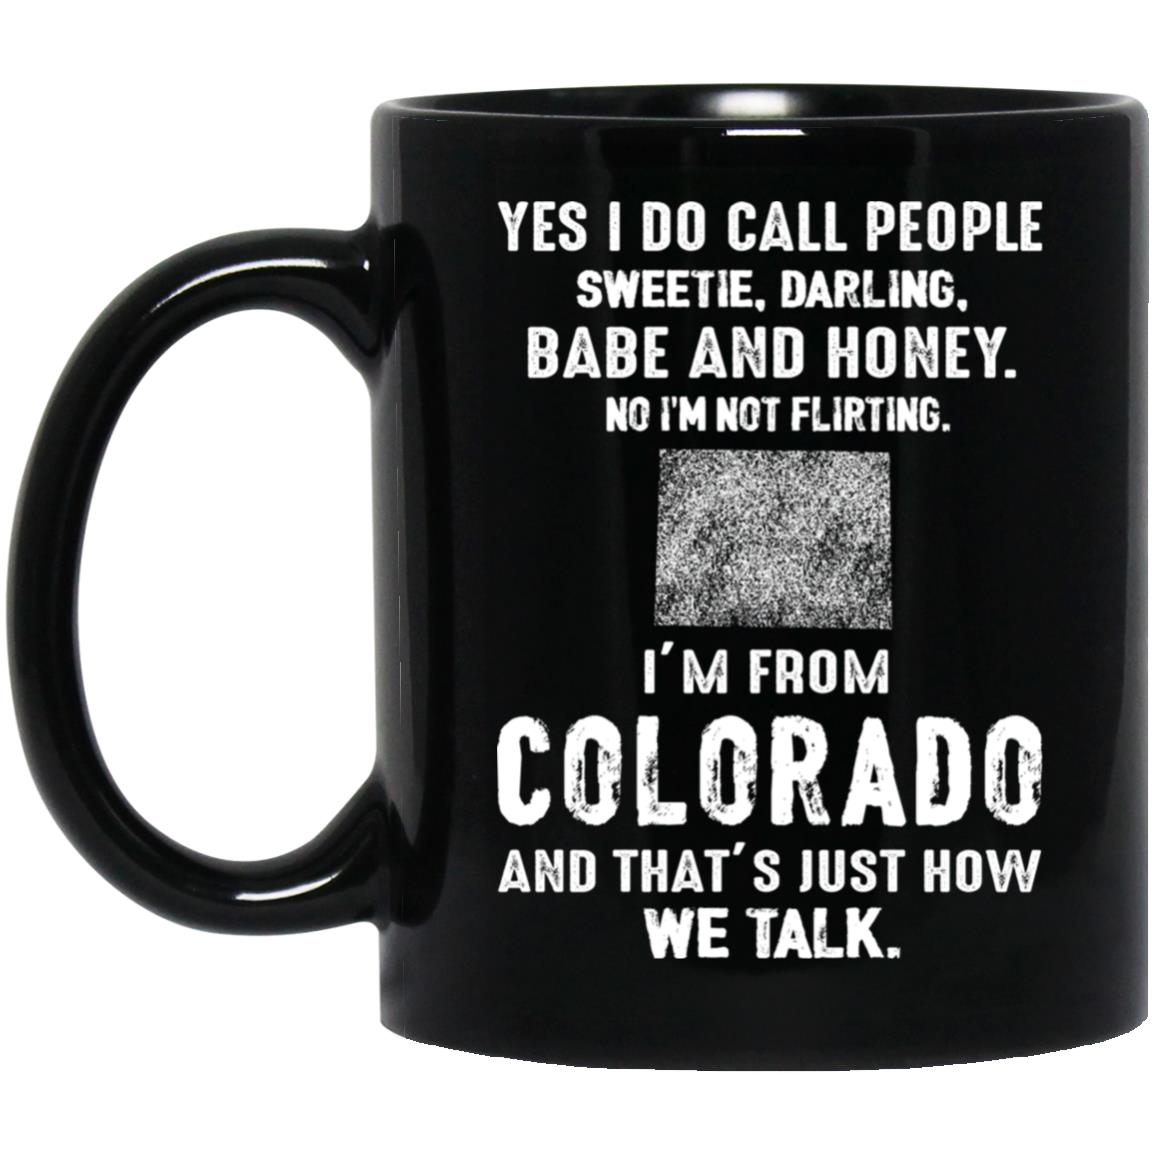 I'm From Colorado That's How We Talk Mug